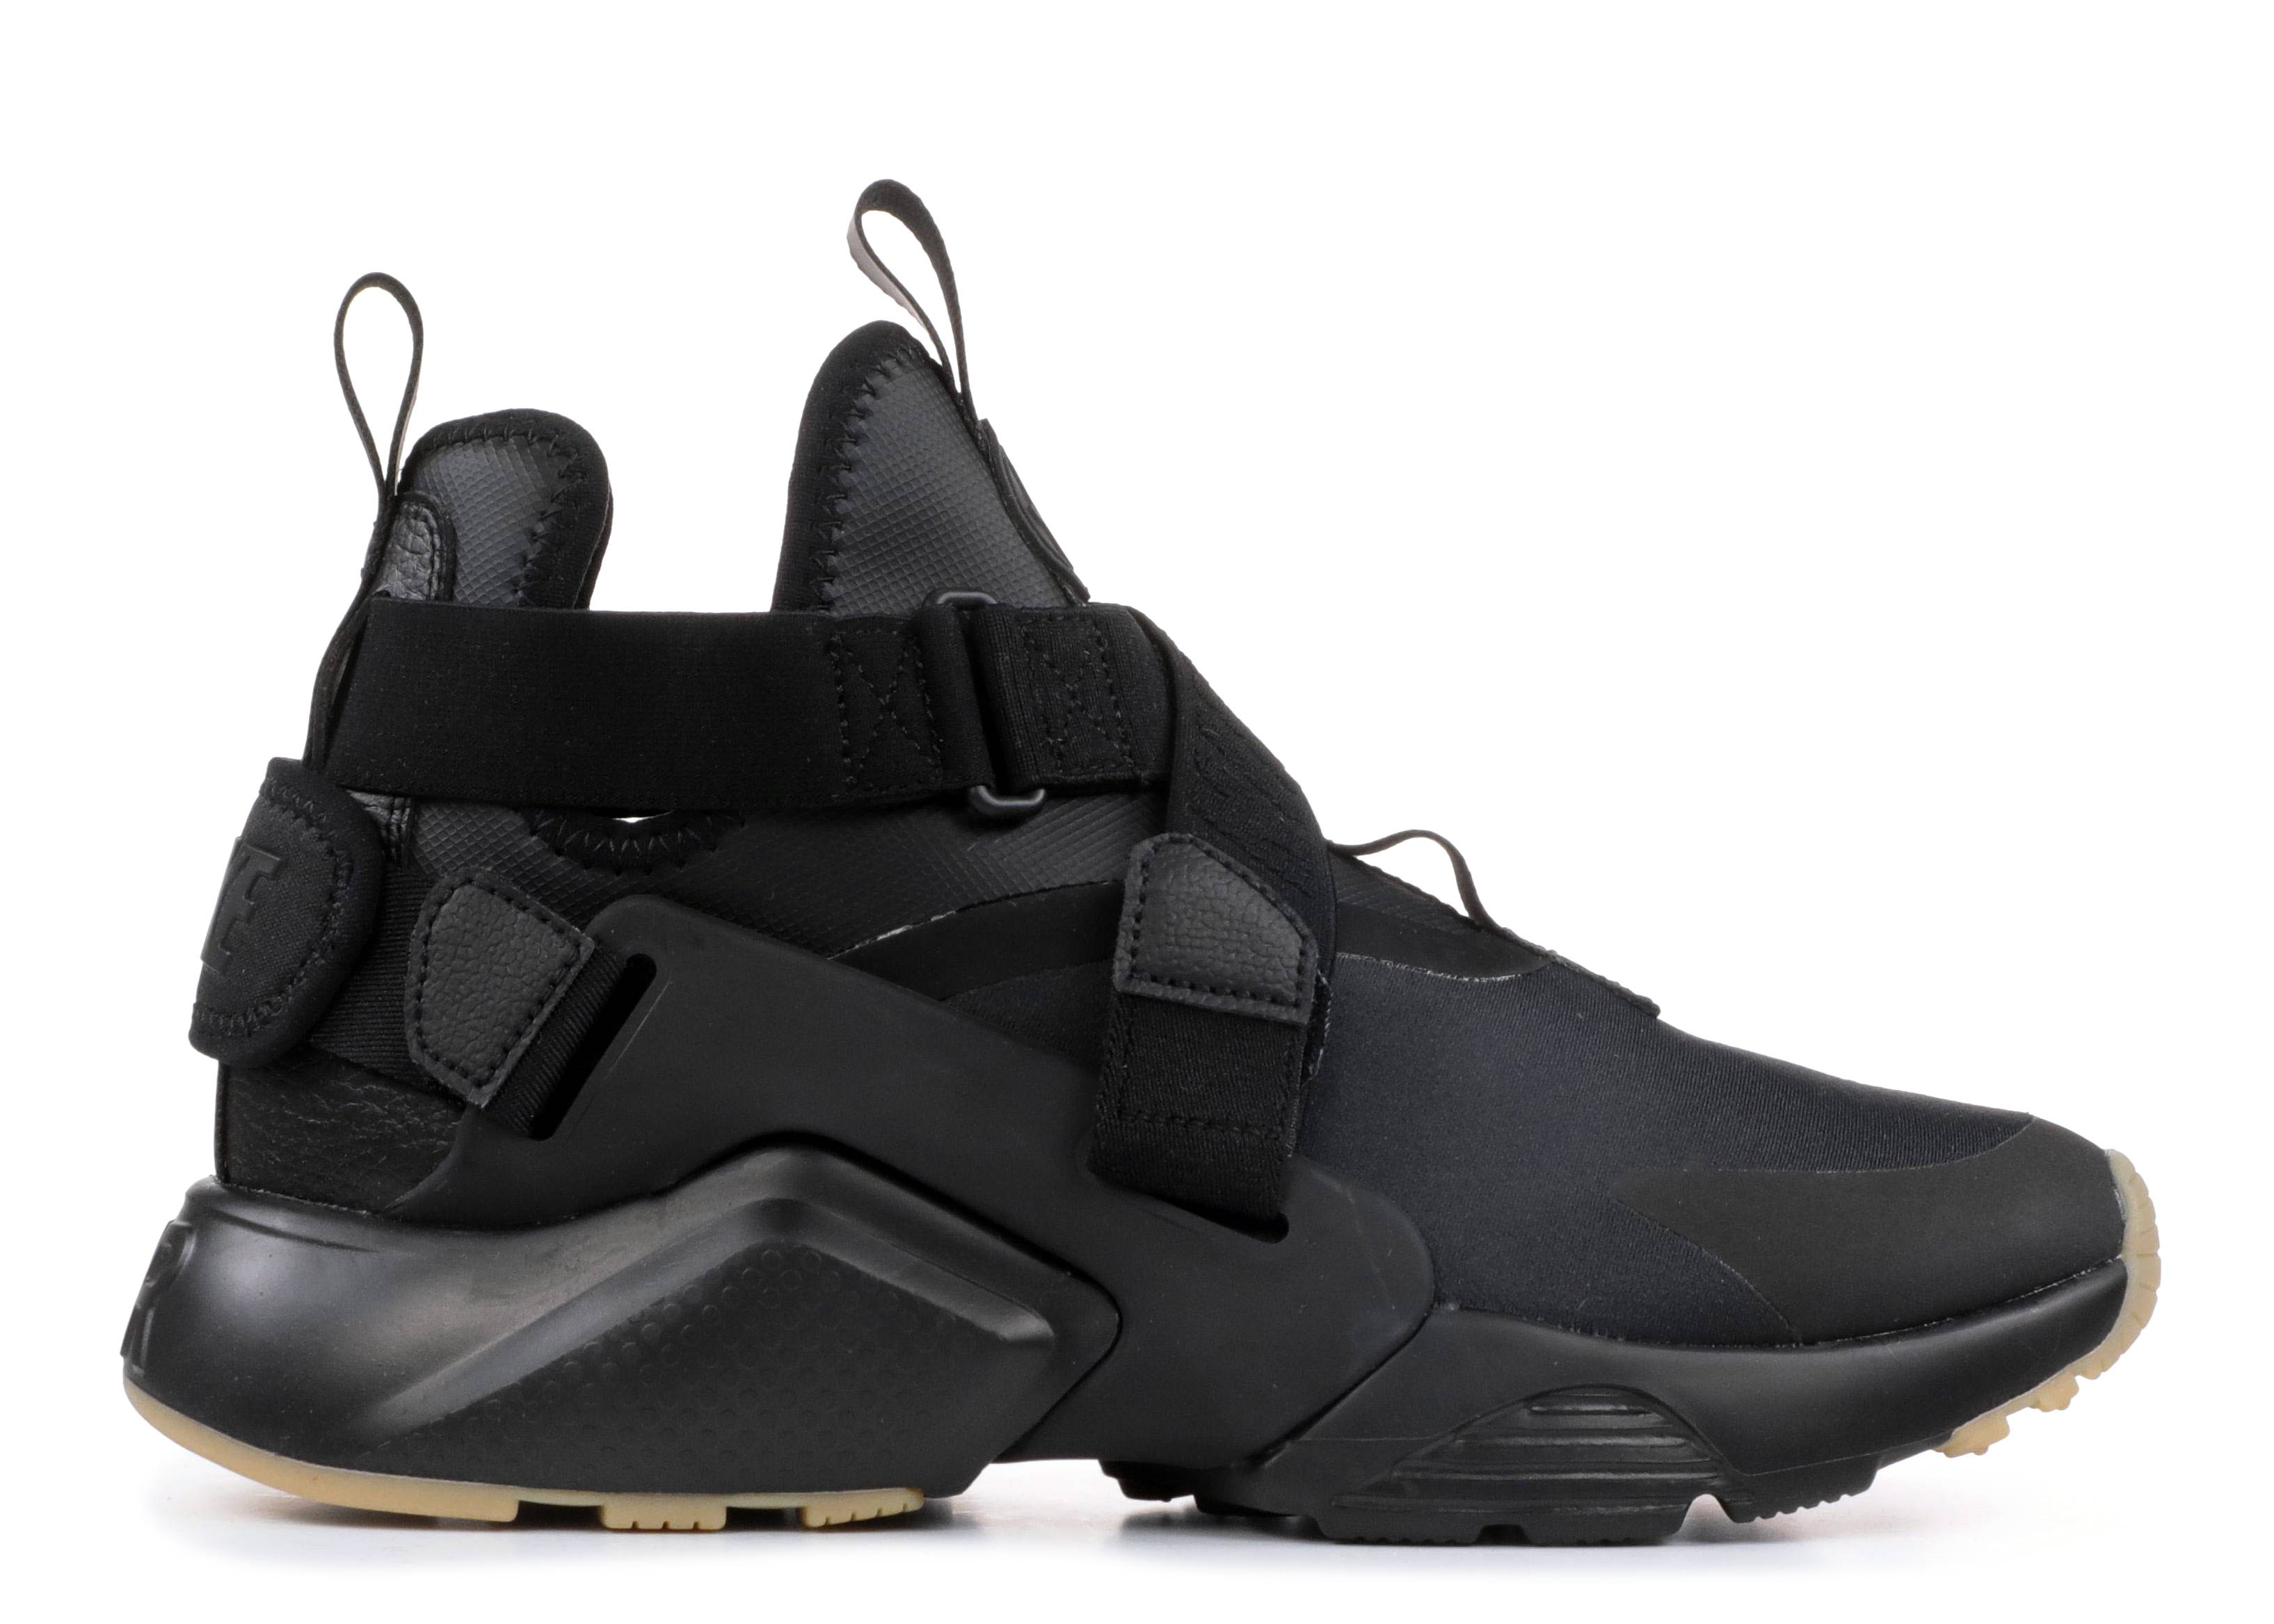 competitive price 05376 f1a59 W NIKE AIR HUARACHE CITY - Nike - AH6787 003 - blackblack- dark grey   Flight Club